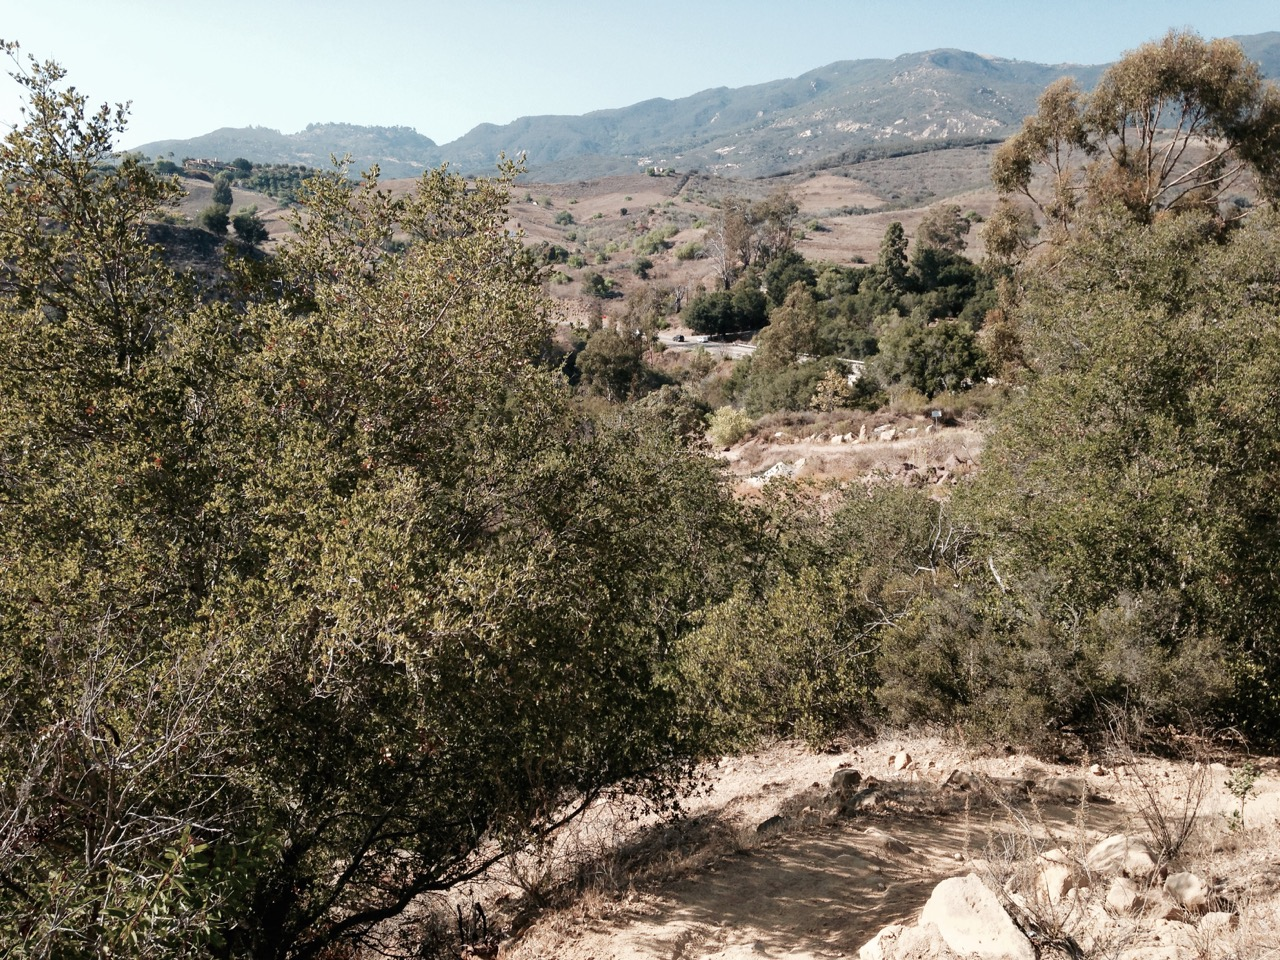 San Antonio Creek Trail – Santa Barbara, California